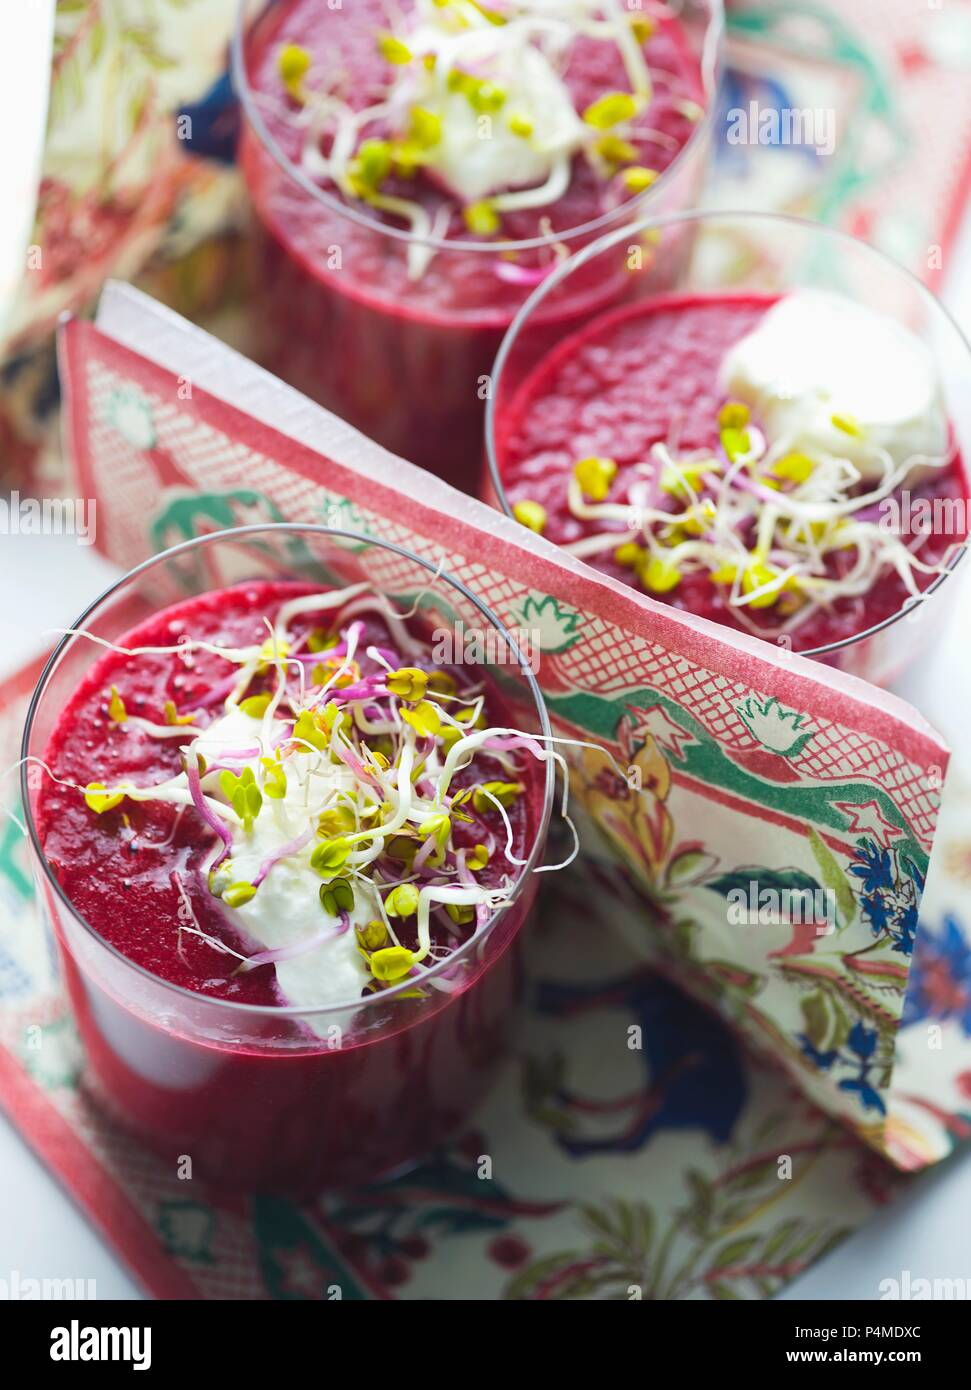 Beetroot juice garnished with shoots and sour cream - Stock Image